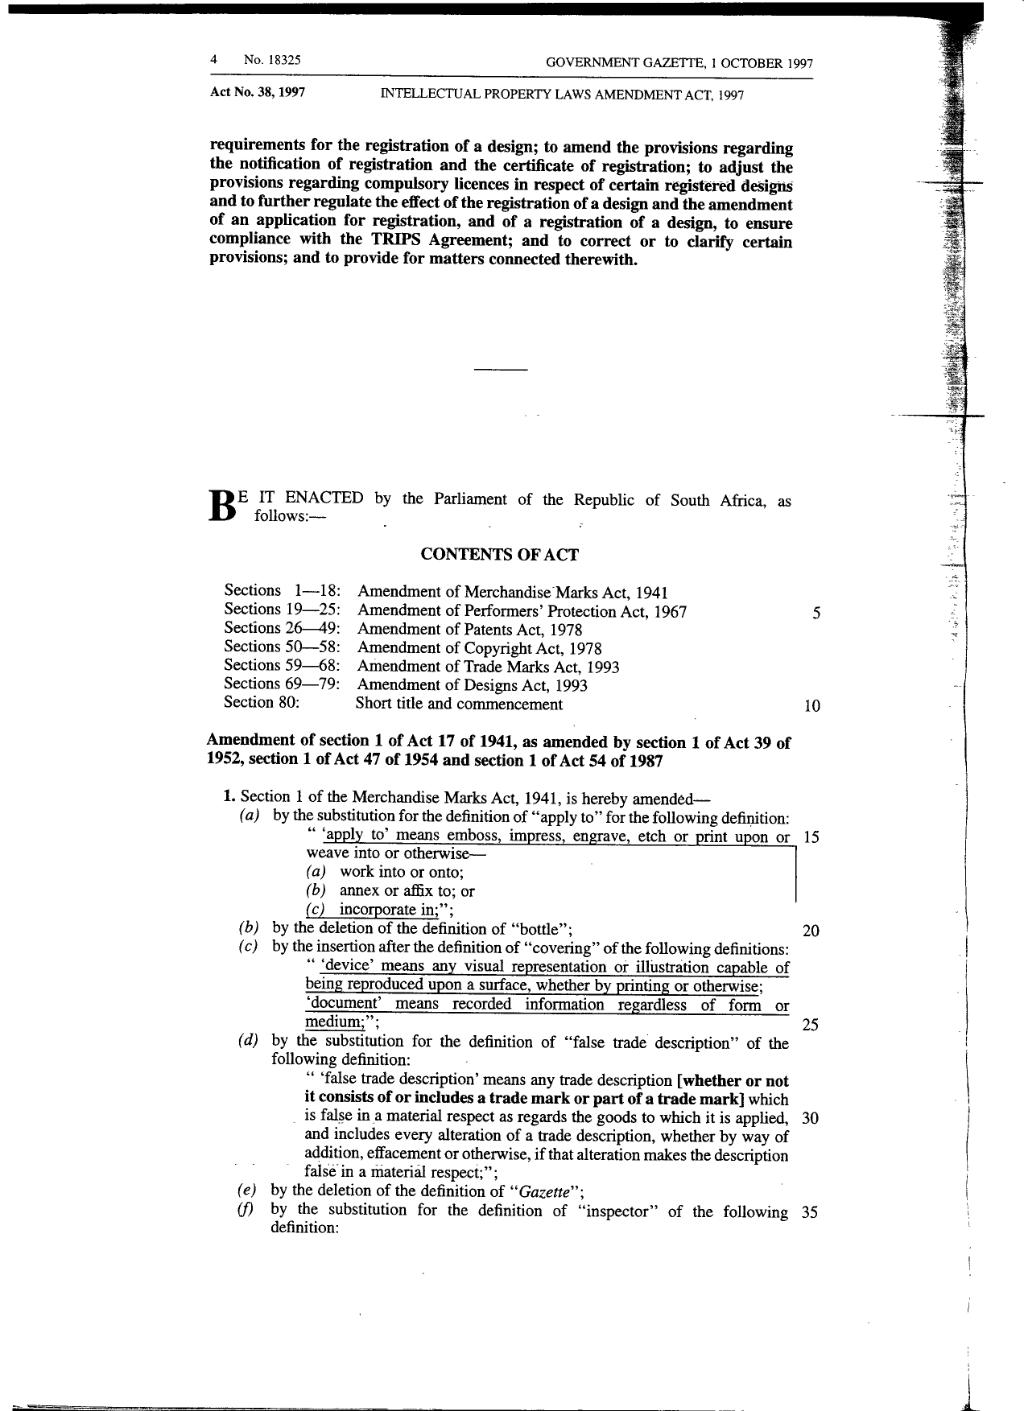 page:intellectual property laws amendment act 1997 from government